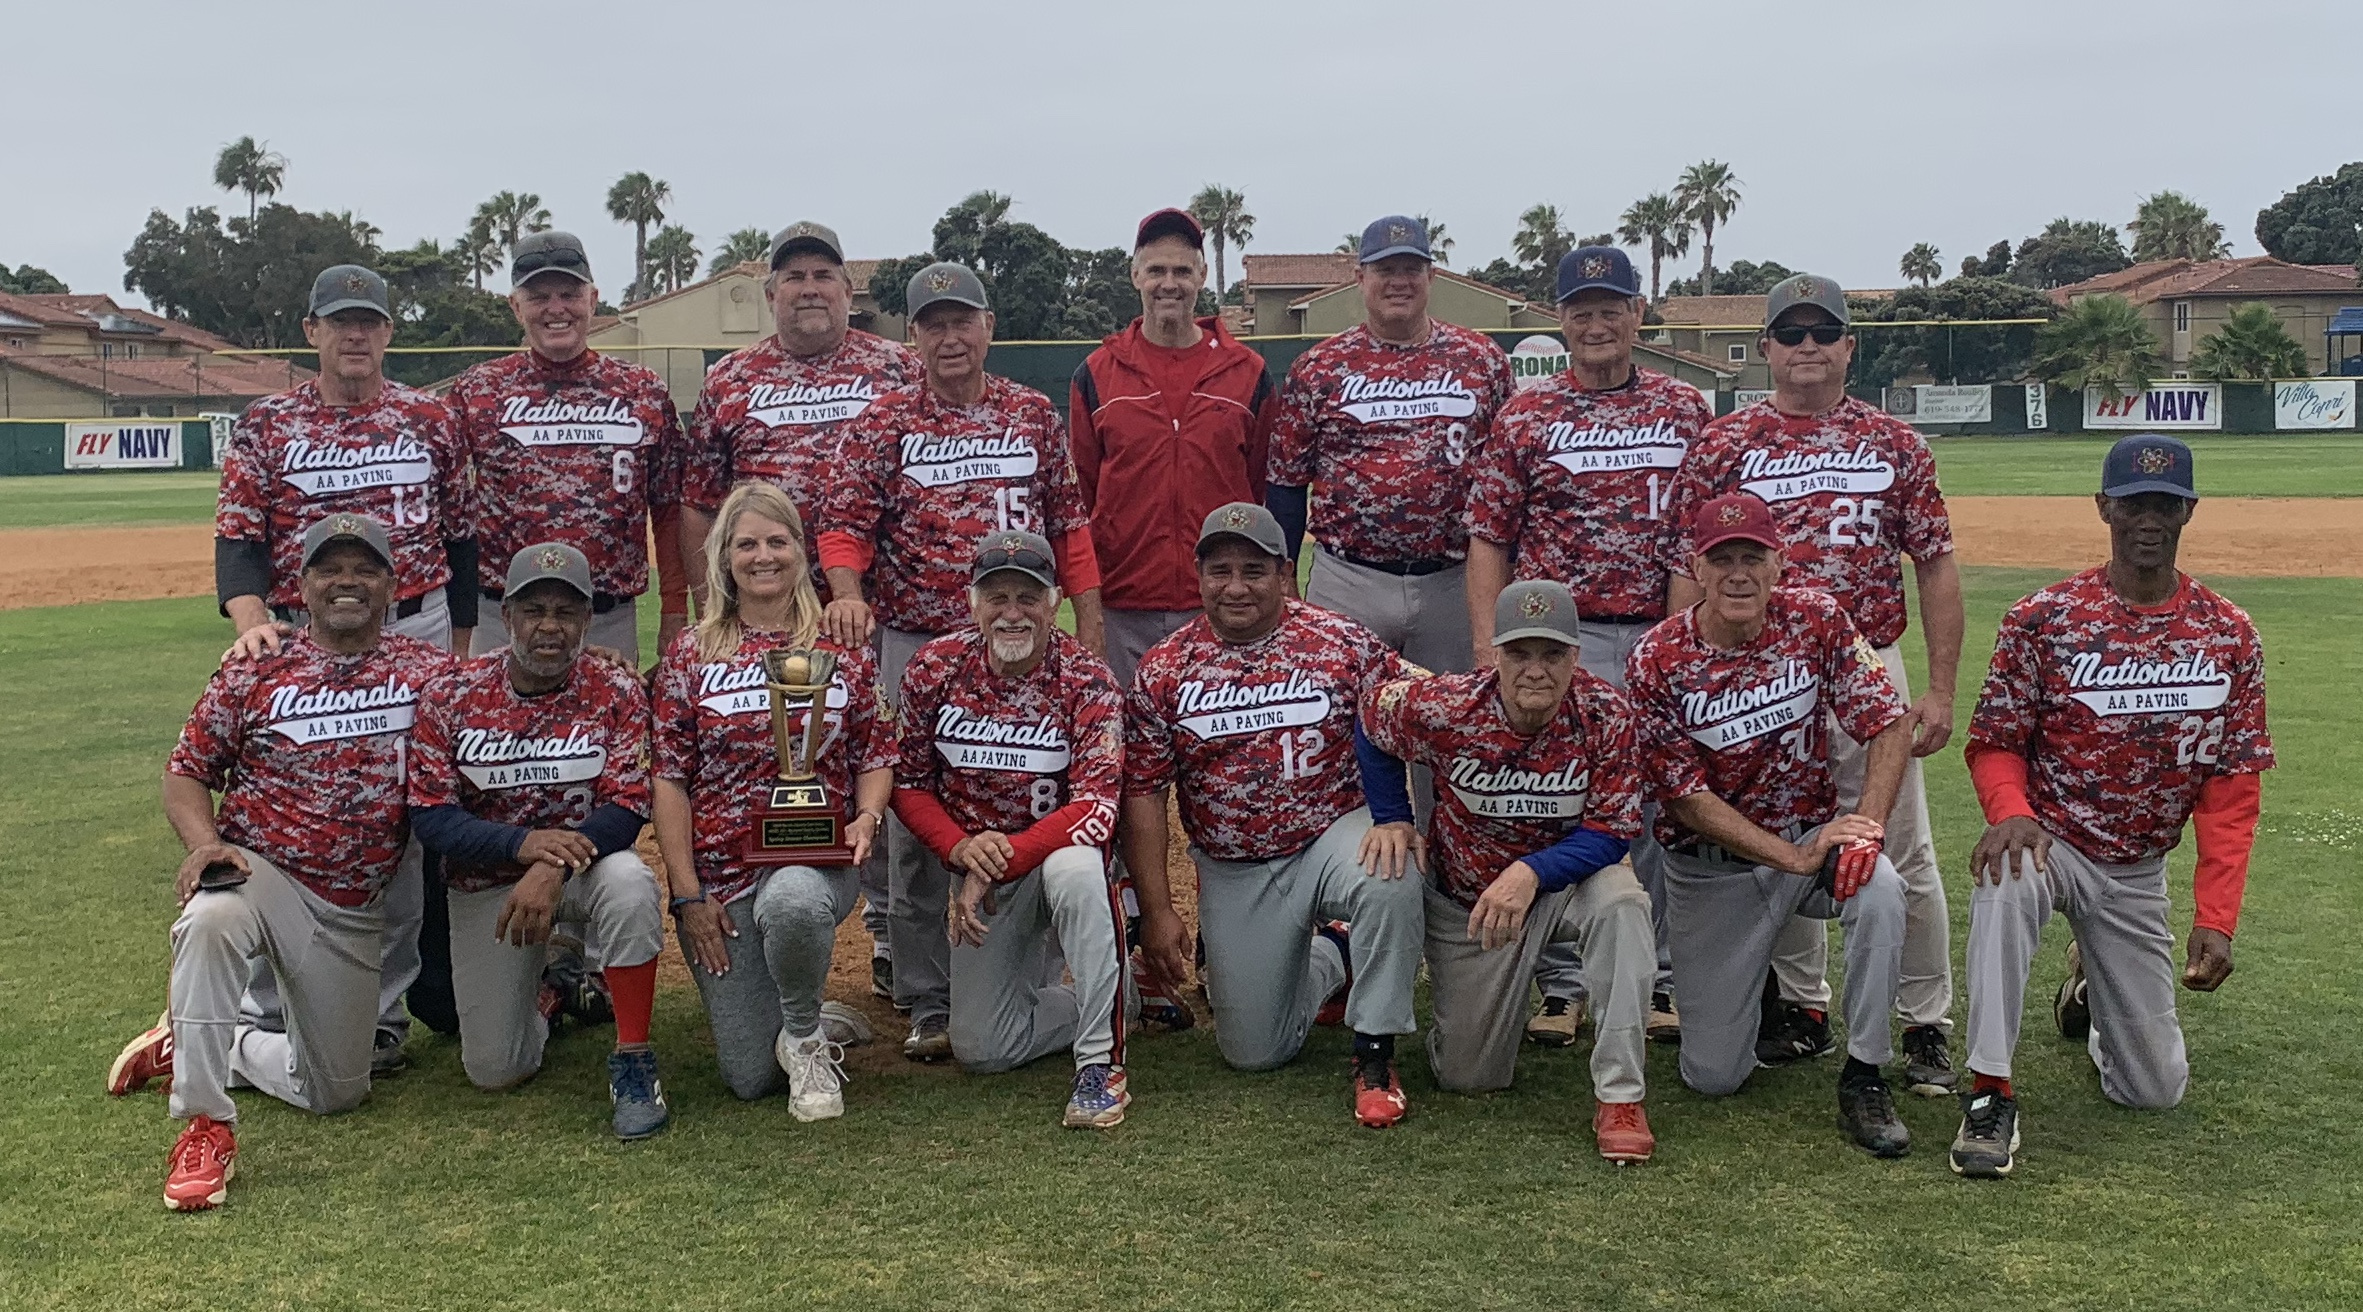 Congratulations to the  AA Nationals, The 2019 MSBL 53+ National Division South Spring Champions